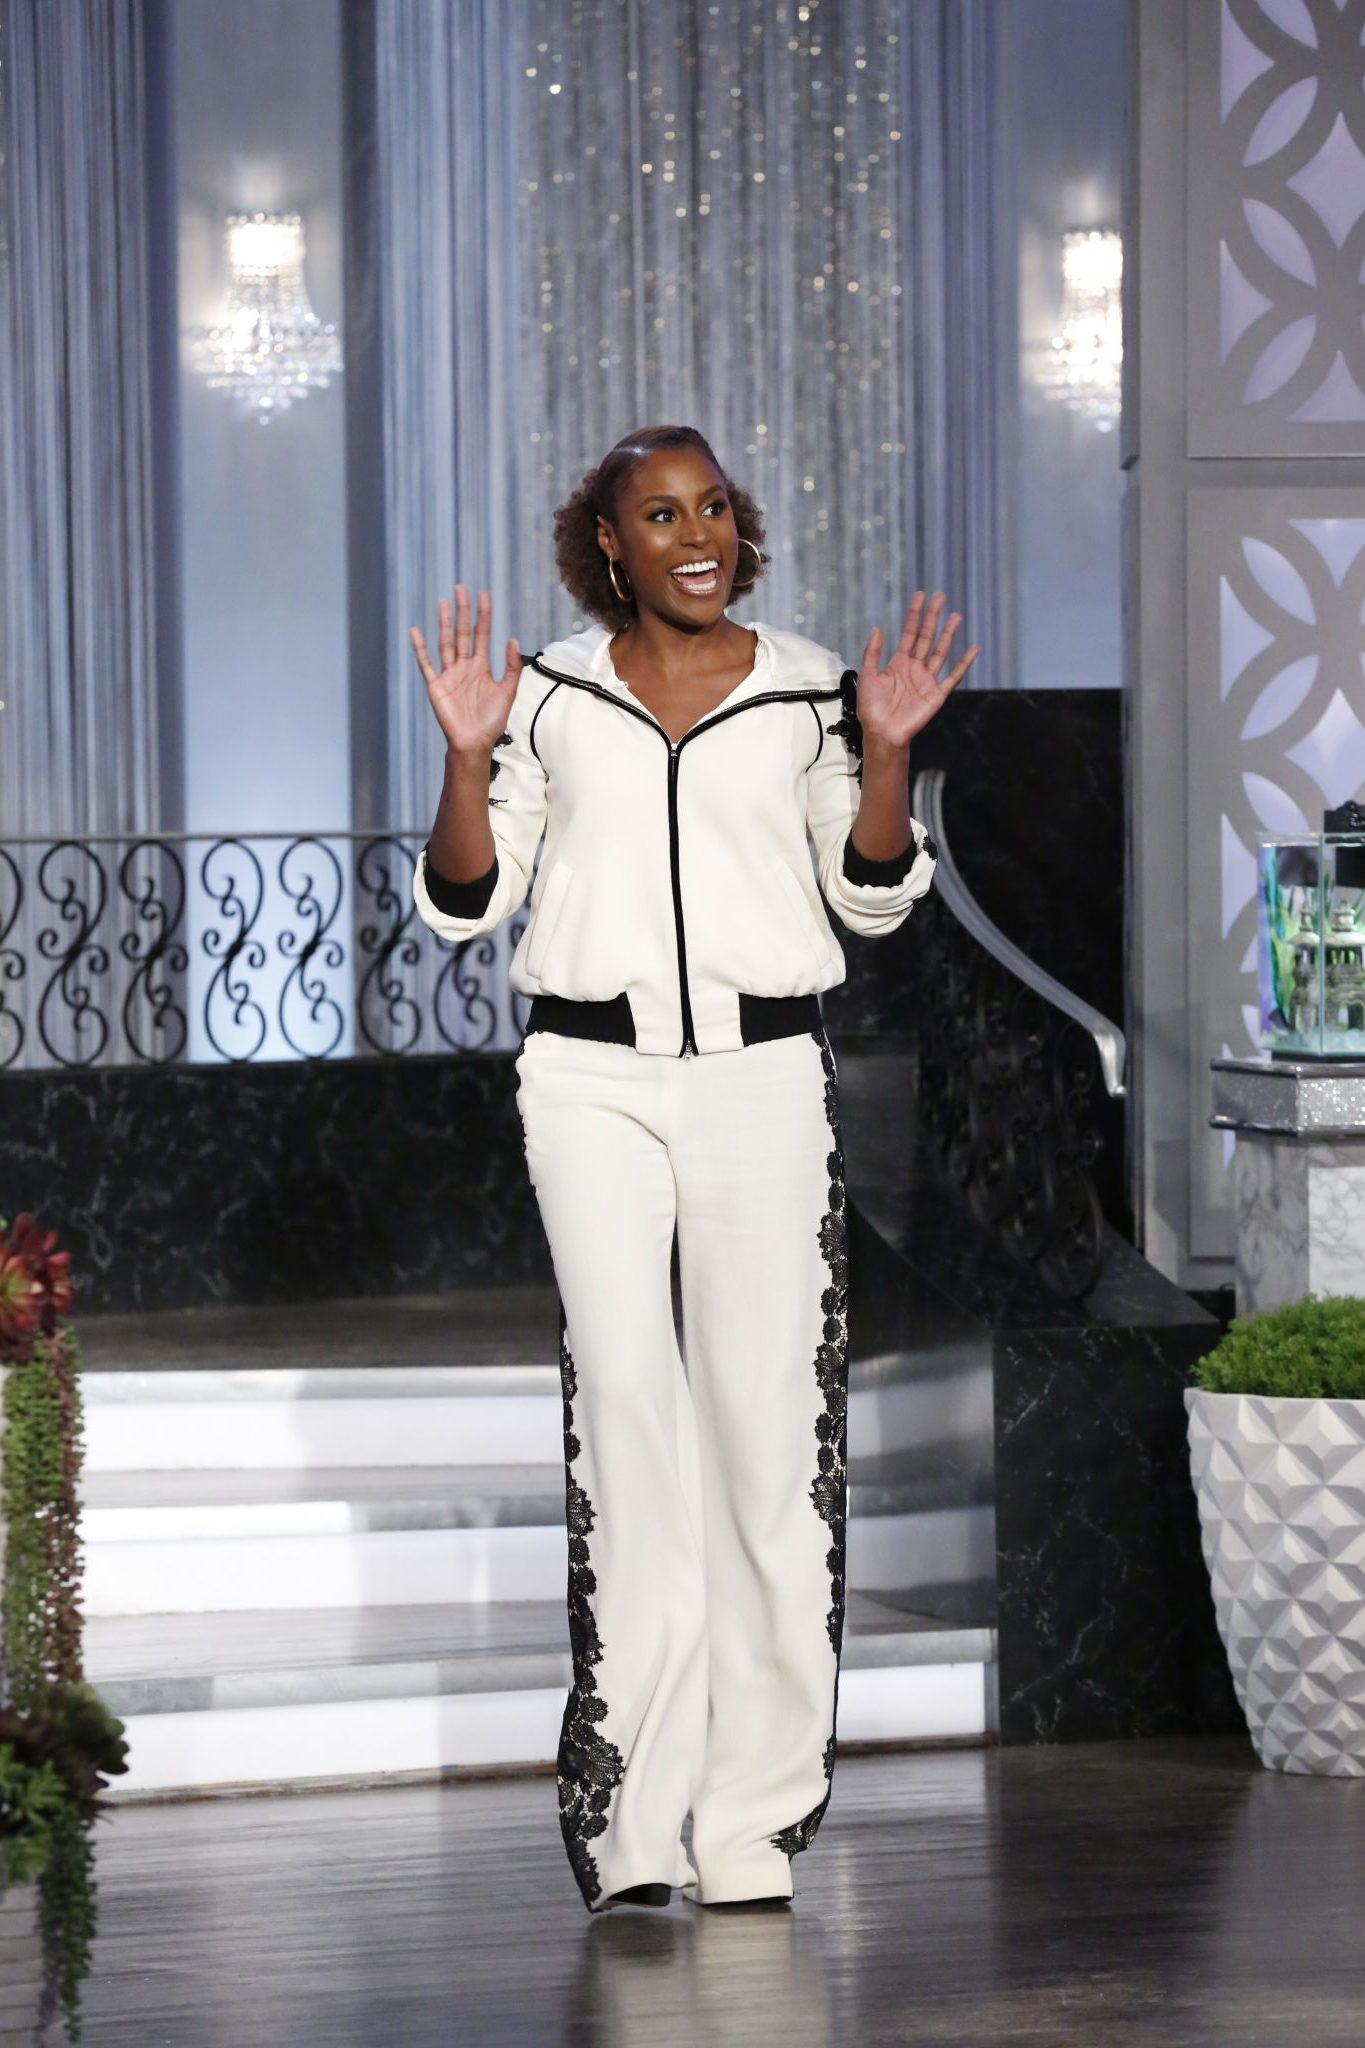 The Real Welcomes Issa Rae And Brings Back The Girl Chat Wheel!